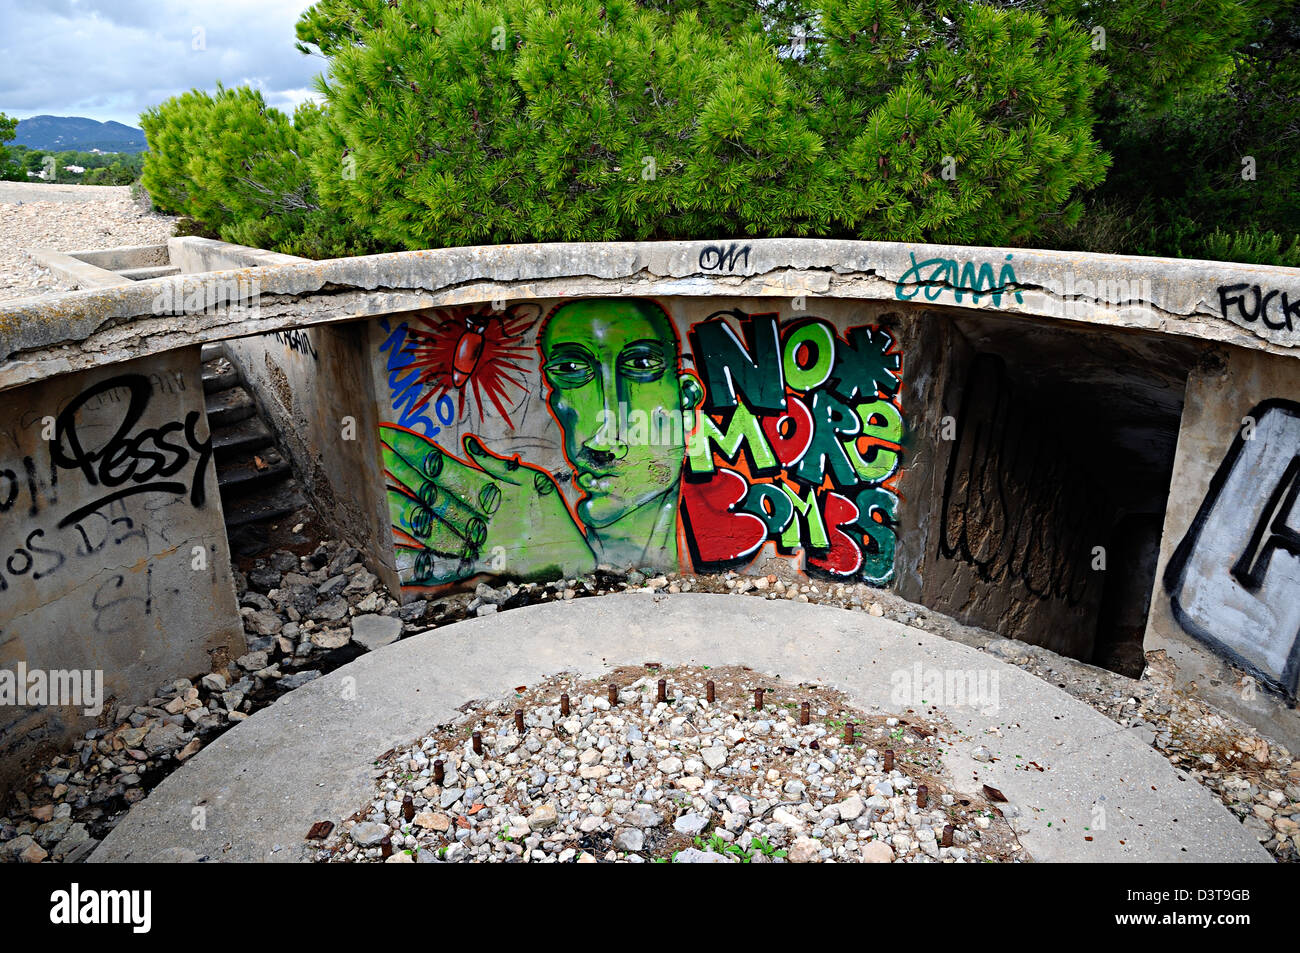 'No more bombs' graffiti painted on an old bunker. Ibiza, Balearic Islands, Spain - Stock Image